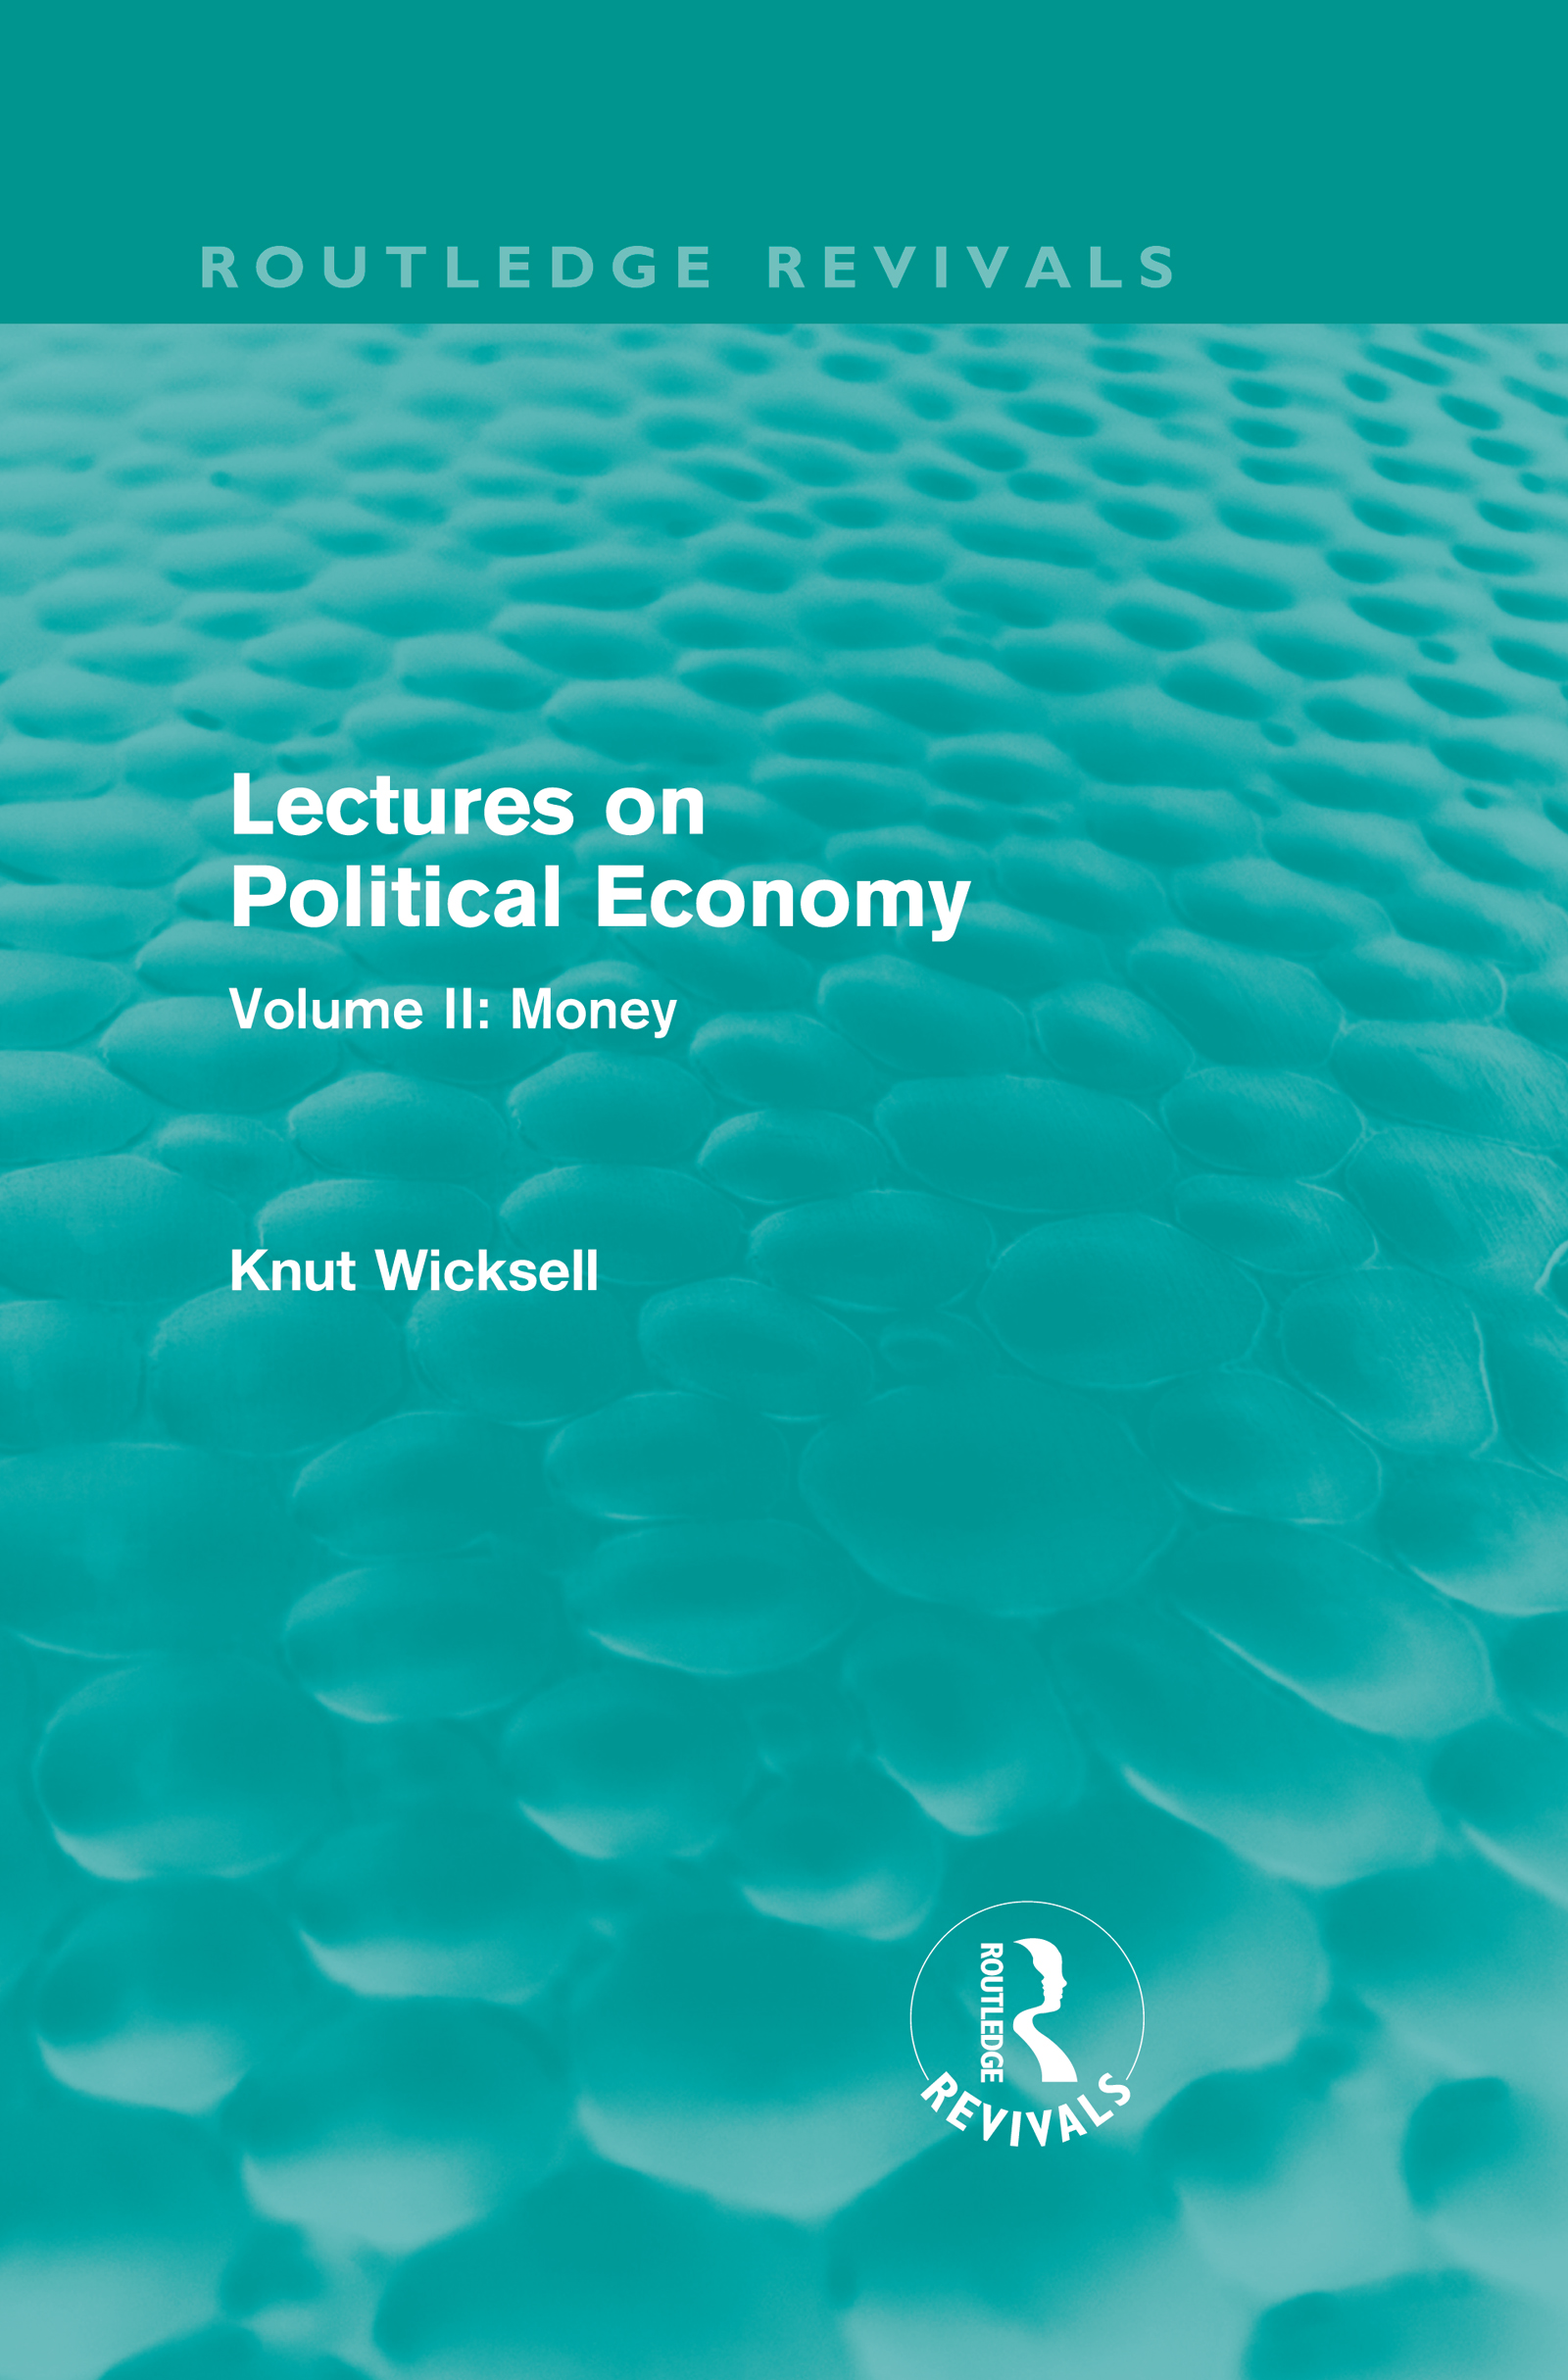 Lectures on Political Economy (Routledge Revivals): Volume II: Money book cover